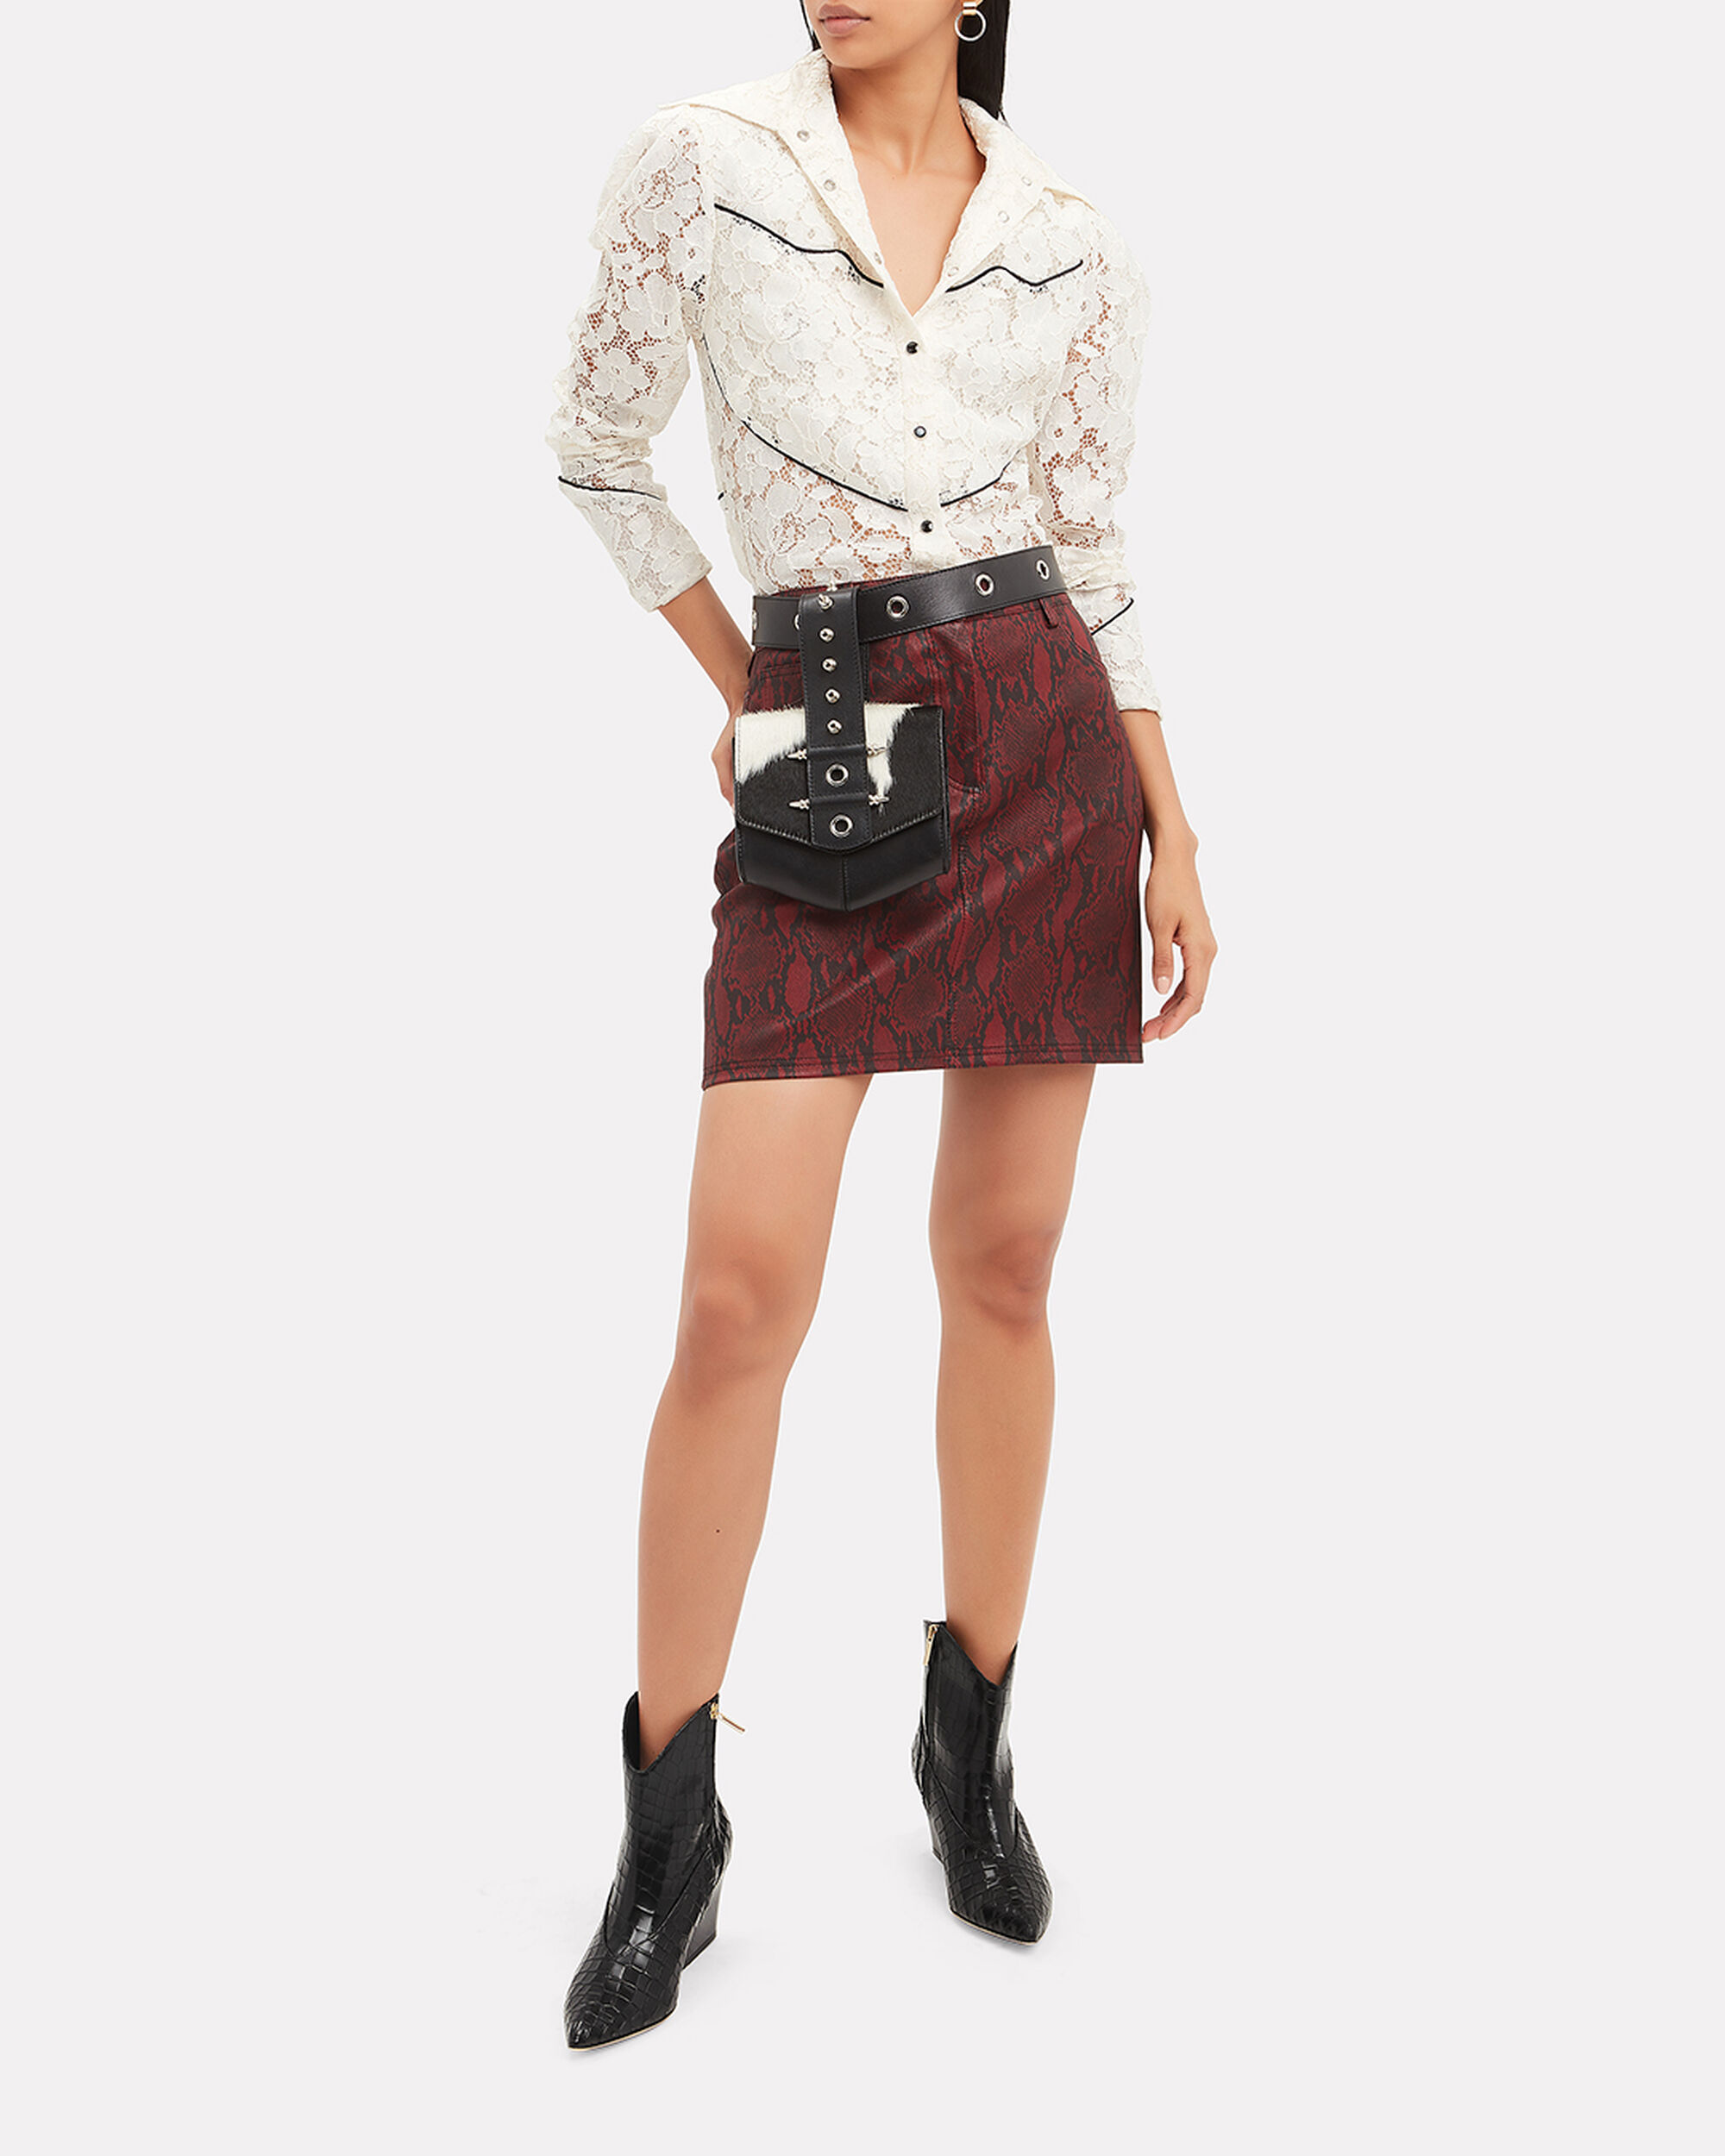 Western Lace Blouse, IVORY, hi-res